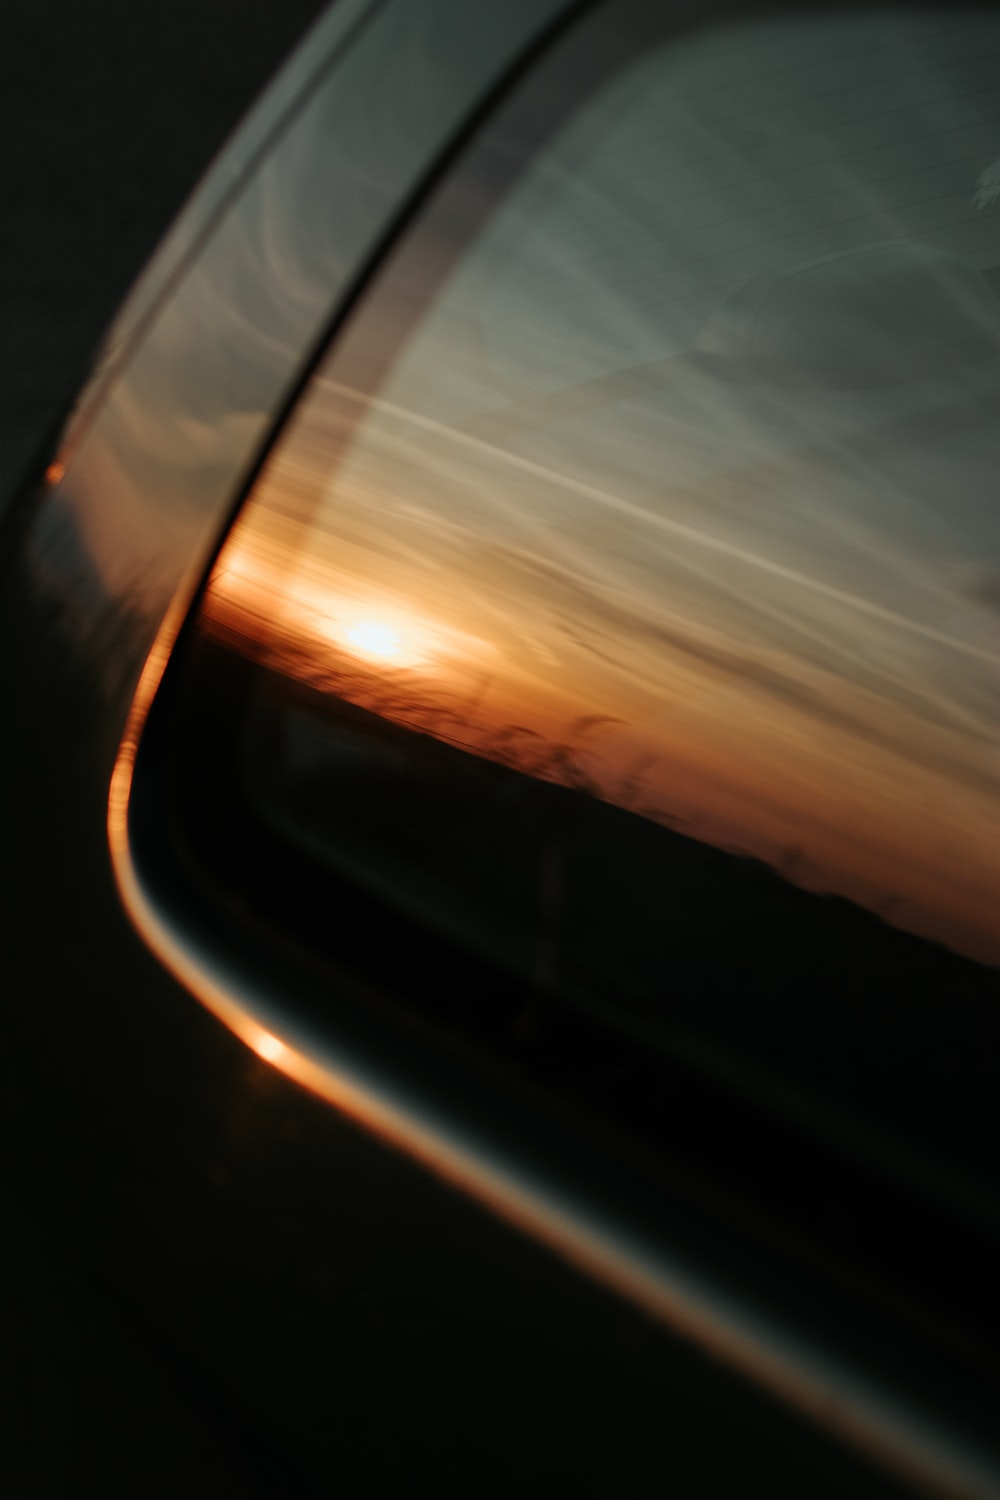 car side mirror during sunset